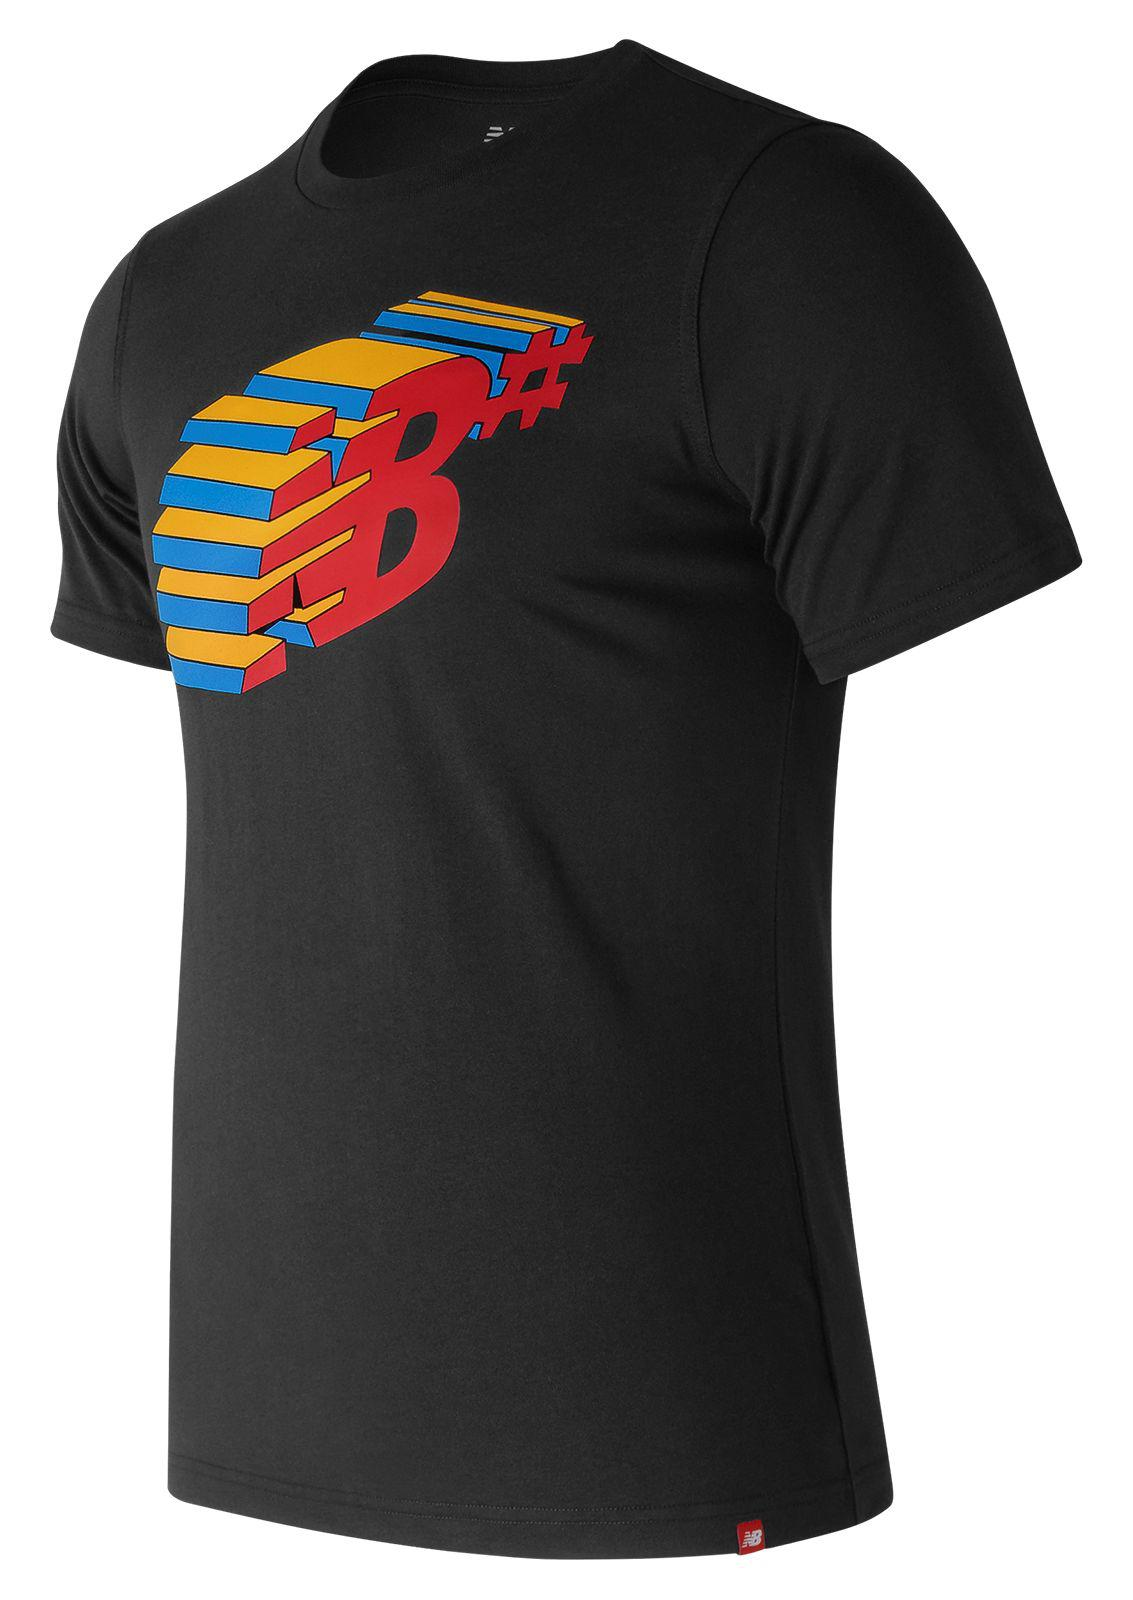 f1001a00e8c09 Lyst - New Balance Nb Numeric Console Tee in Black for Men